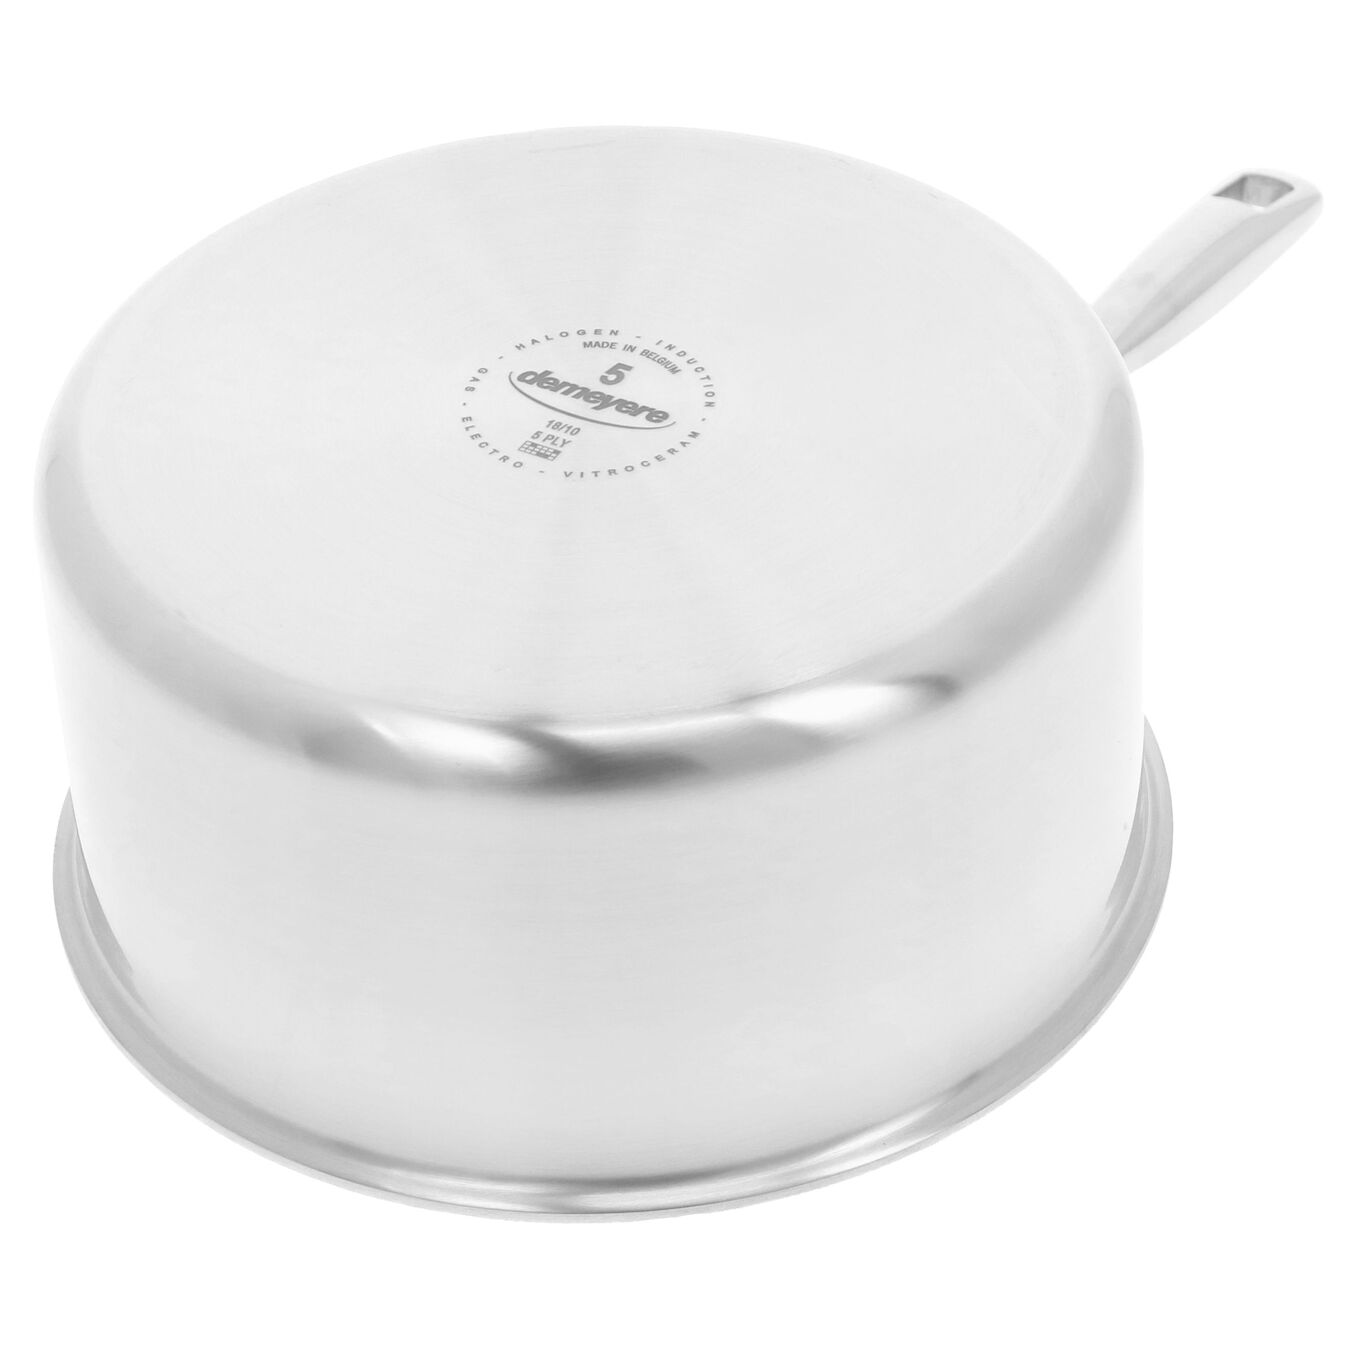 2.8 l round sauce pan with lid 3QT, silver,,large 5